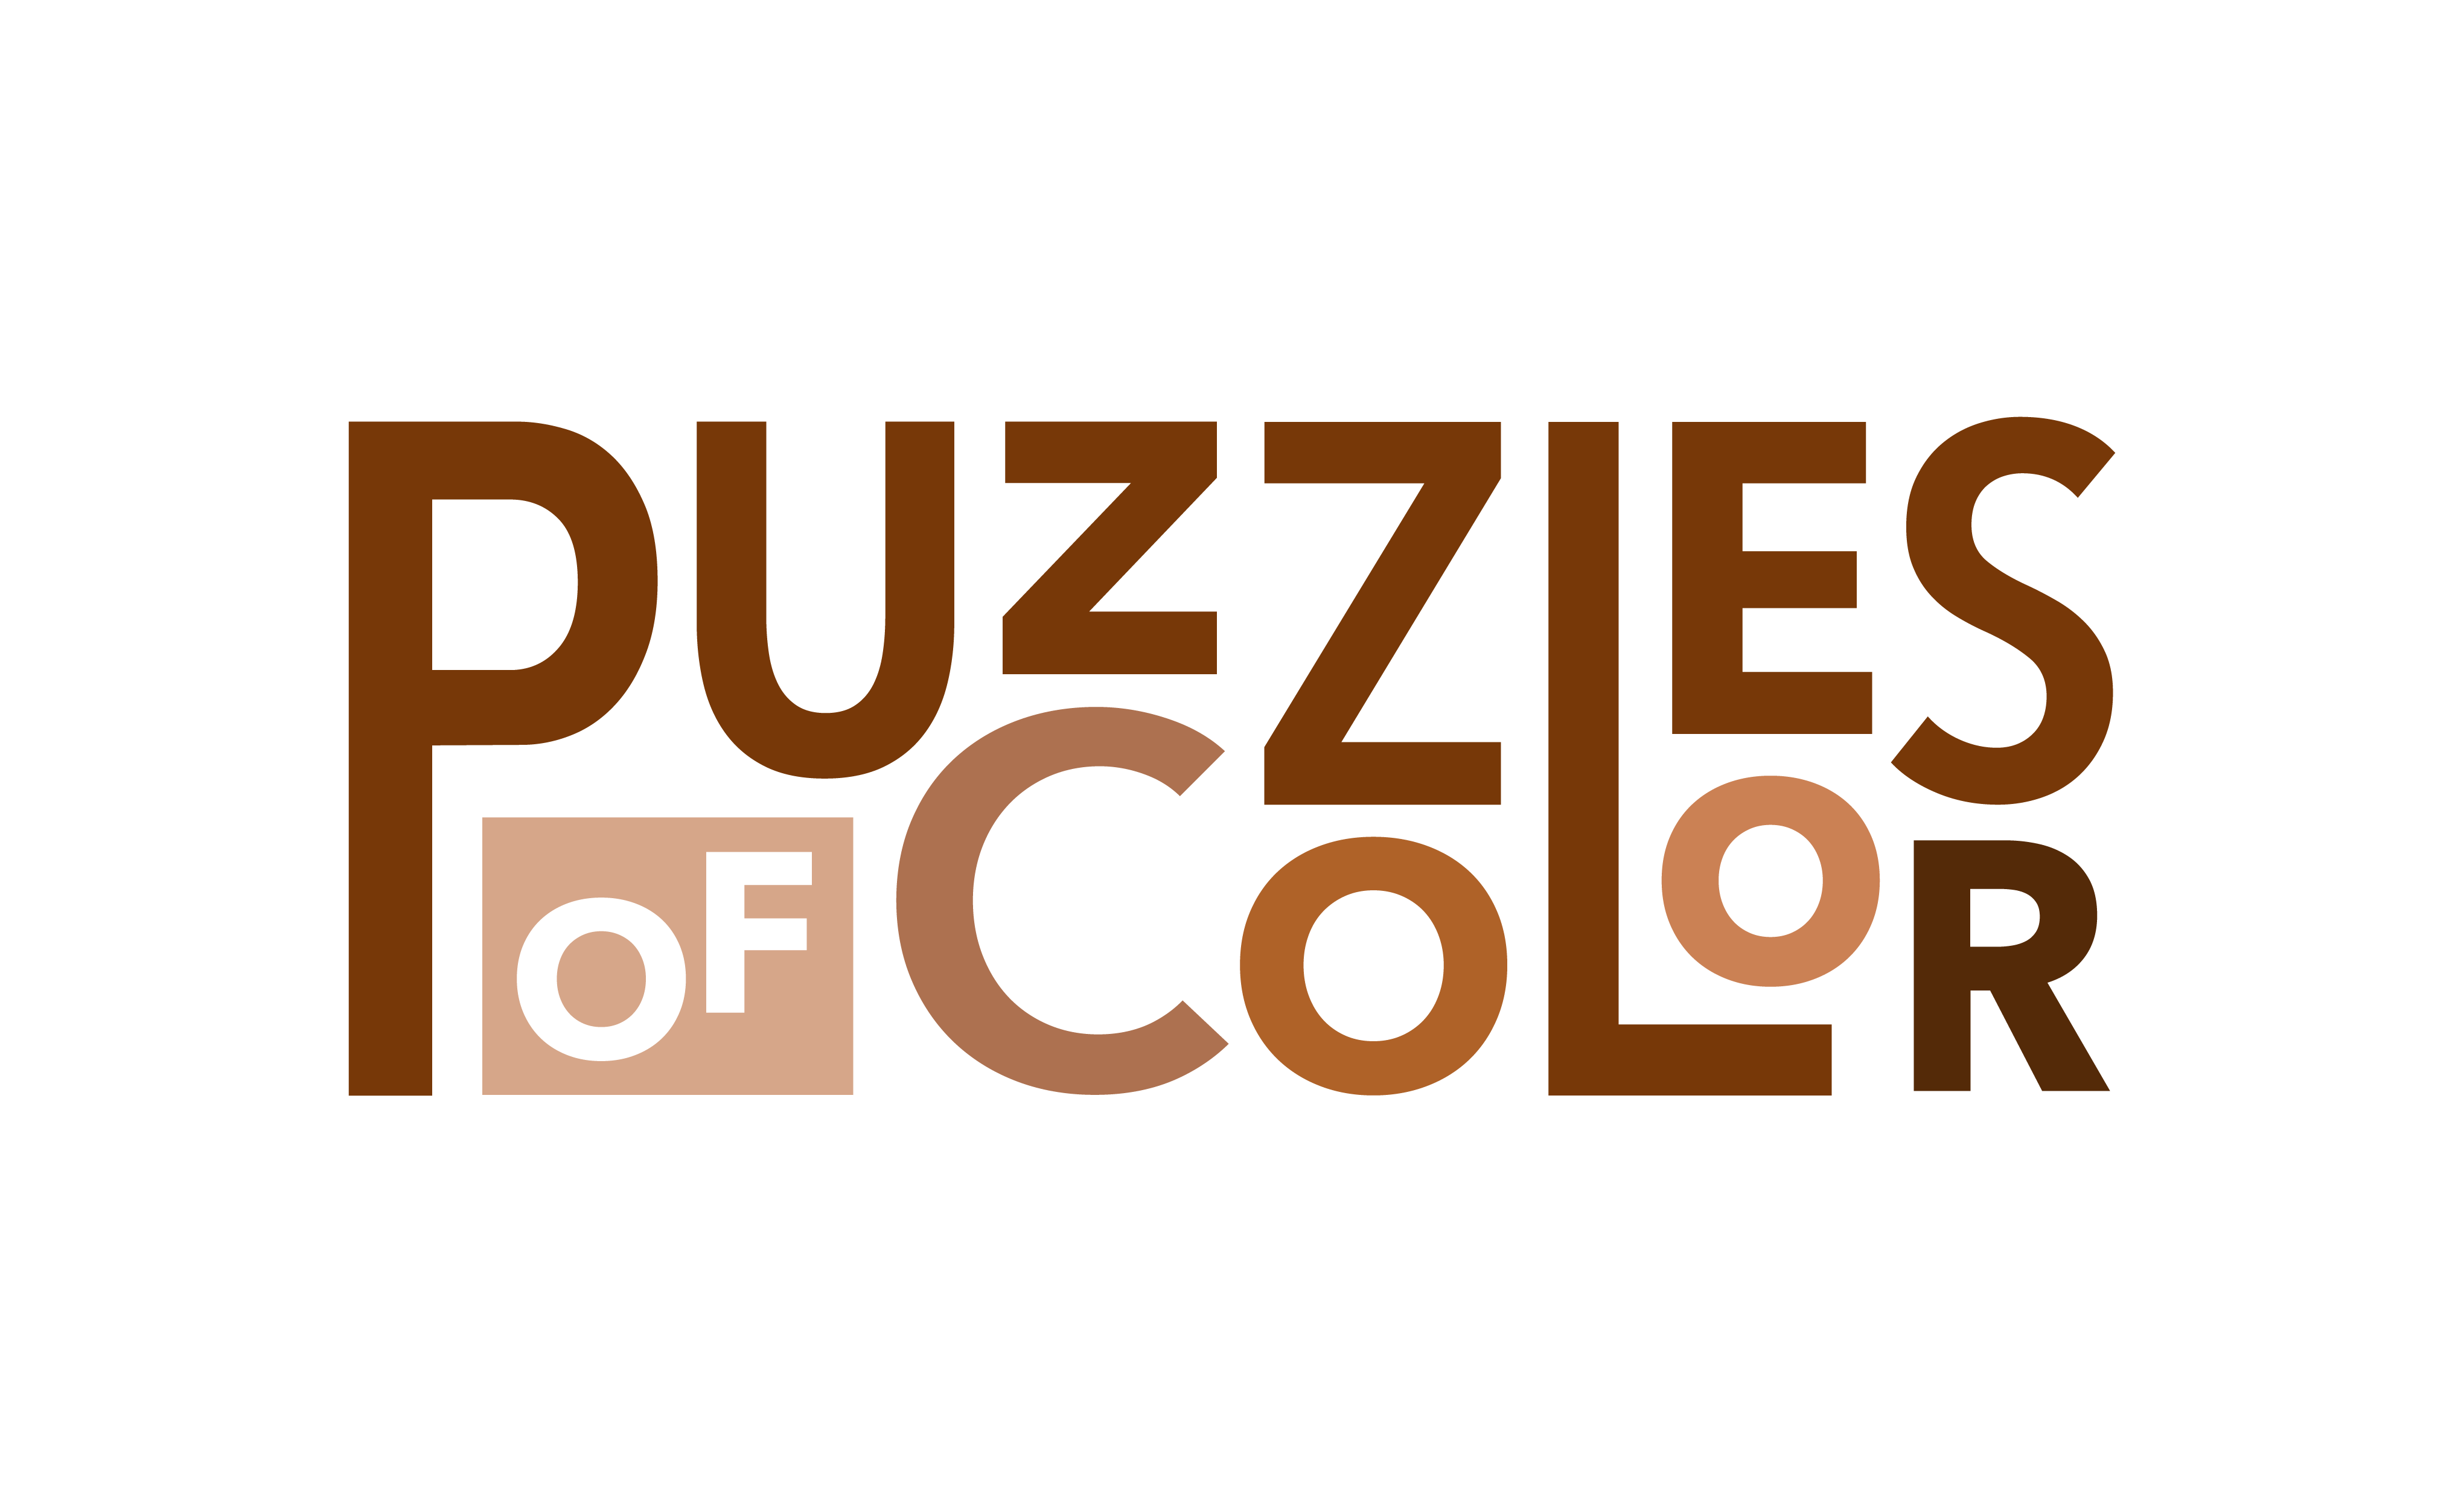 Puzzles of Color